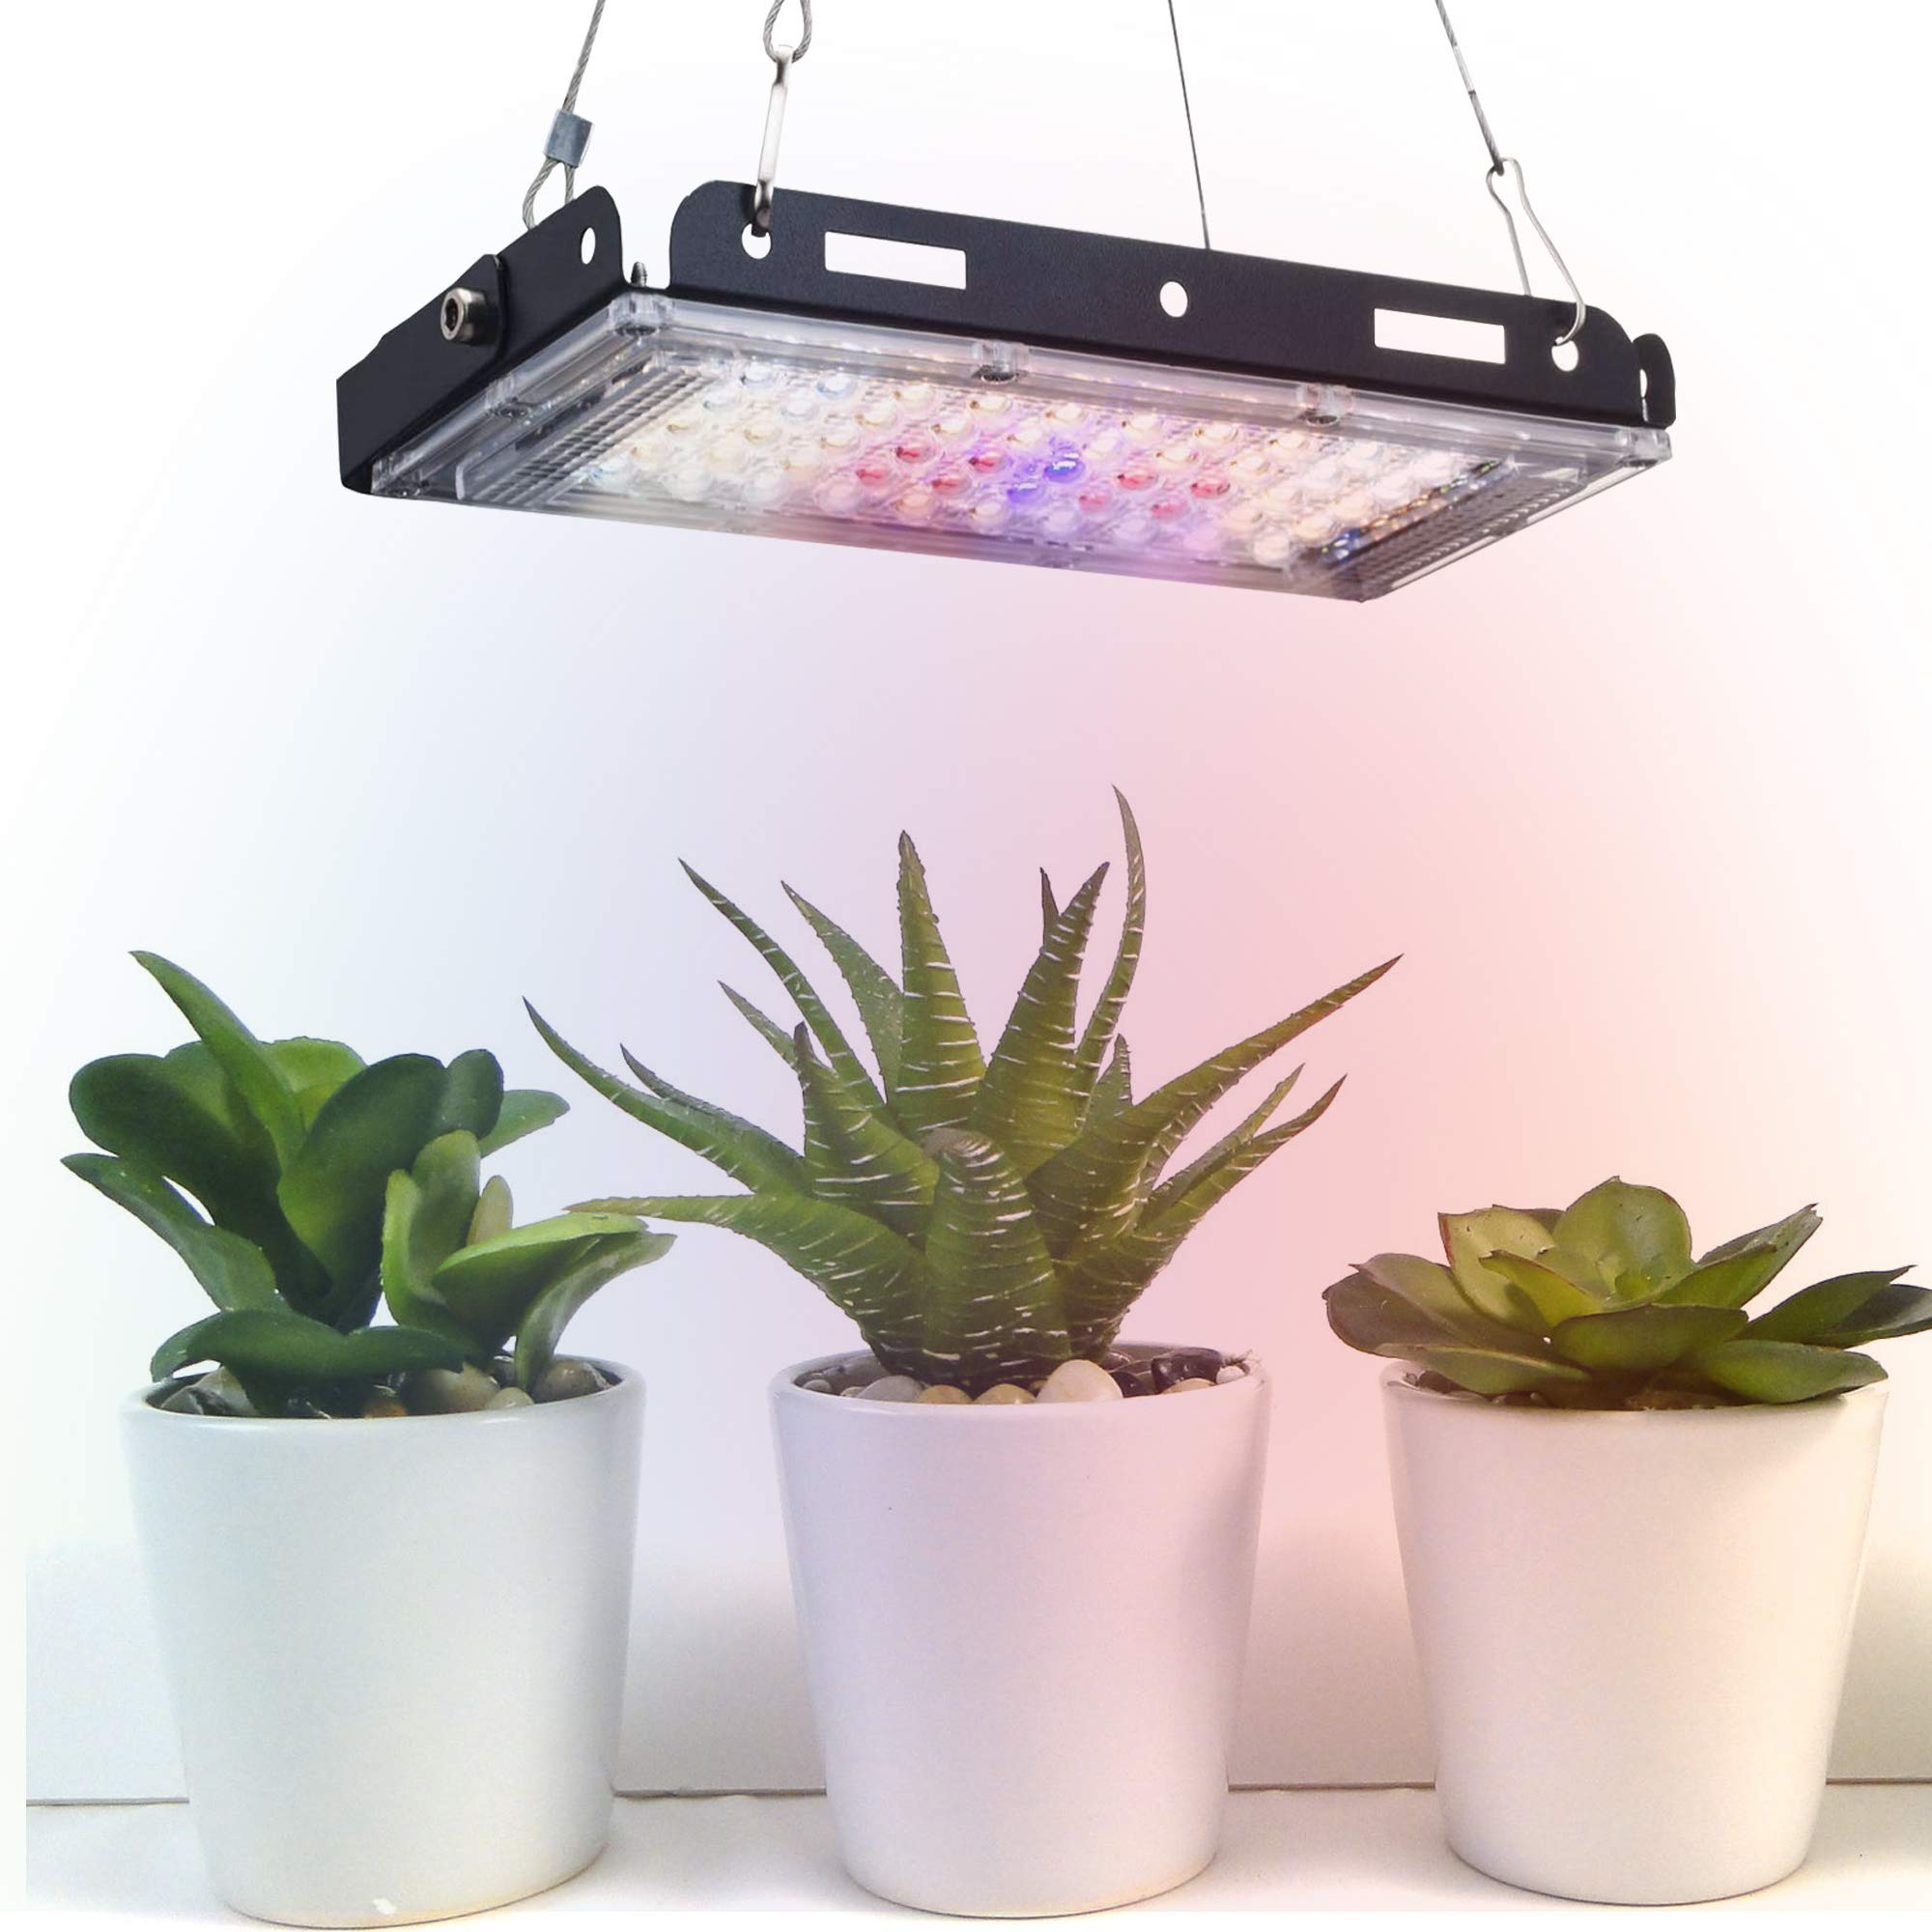 Aogled Grow Light,150W Small LED Grow Lights for Indoor Plants Full Spectrum with On/Off Switch,LED Growing Panel Lamp with Adjustable Grip for Micro Greens,Succulents,Seedlings,Flower,Fruit,Veg